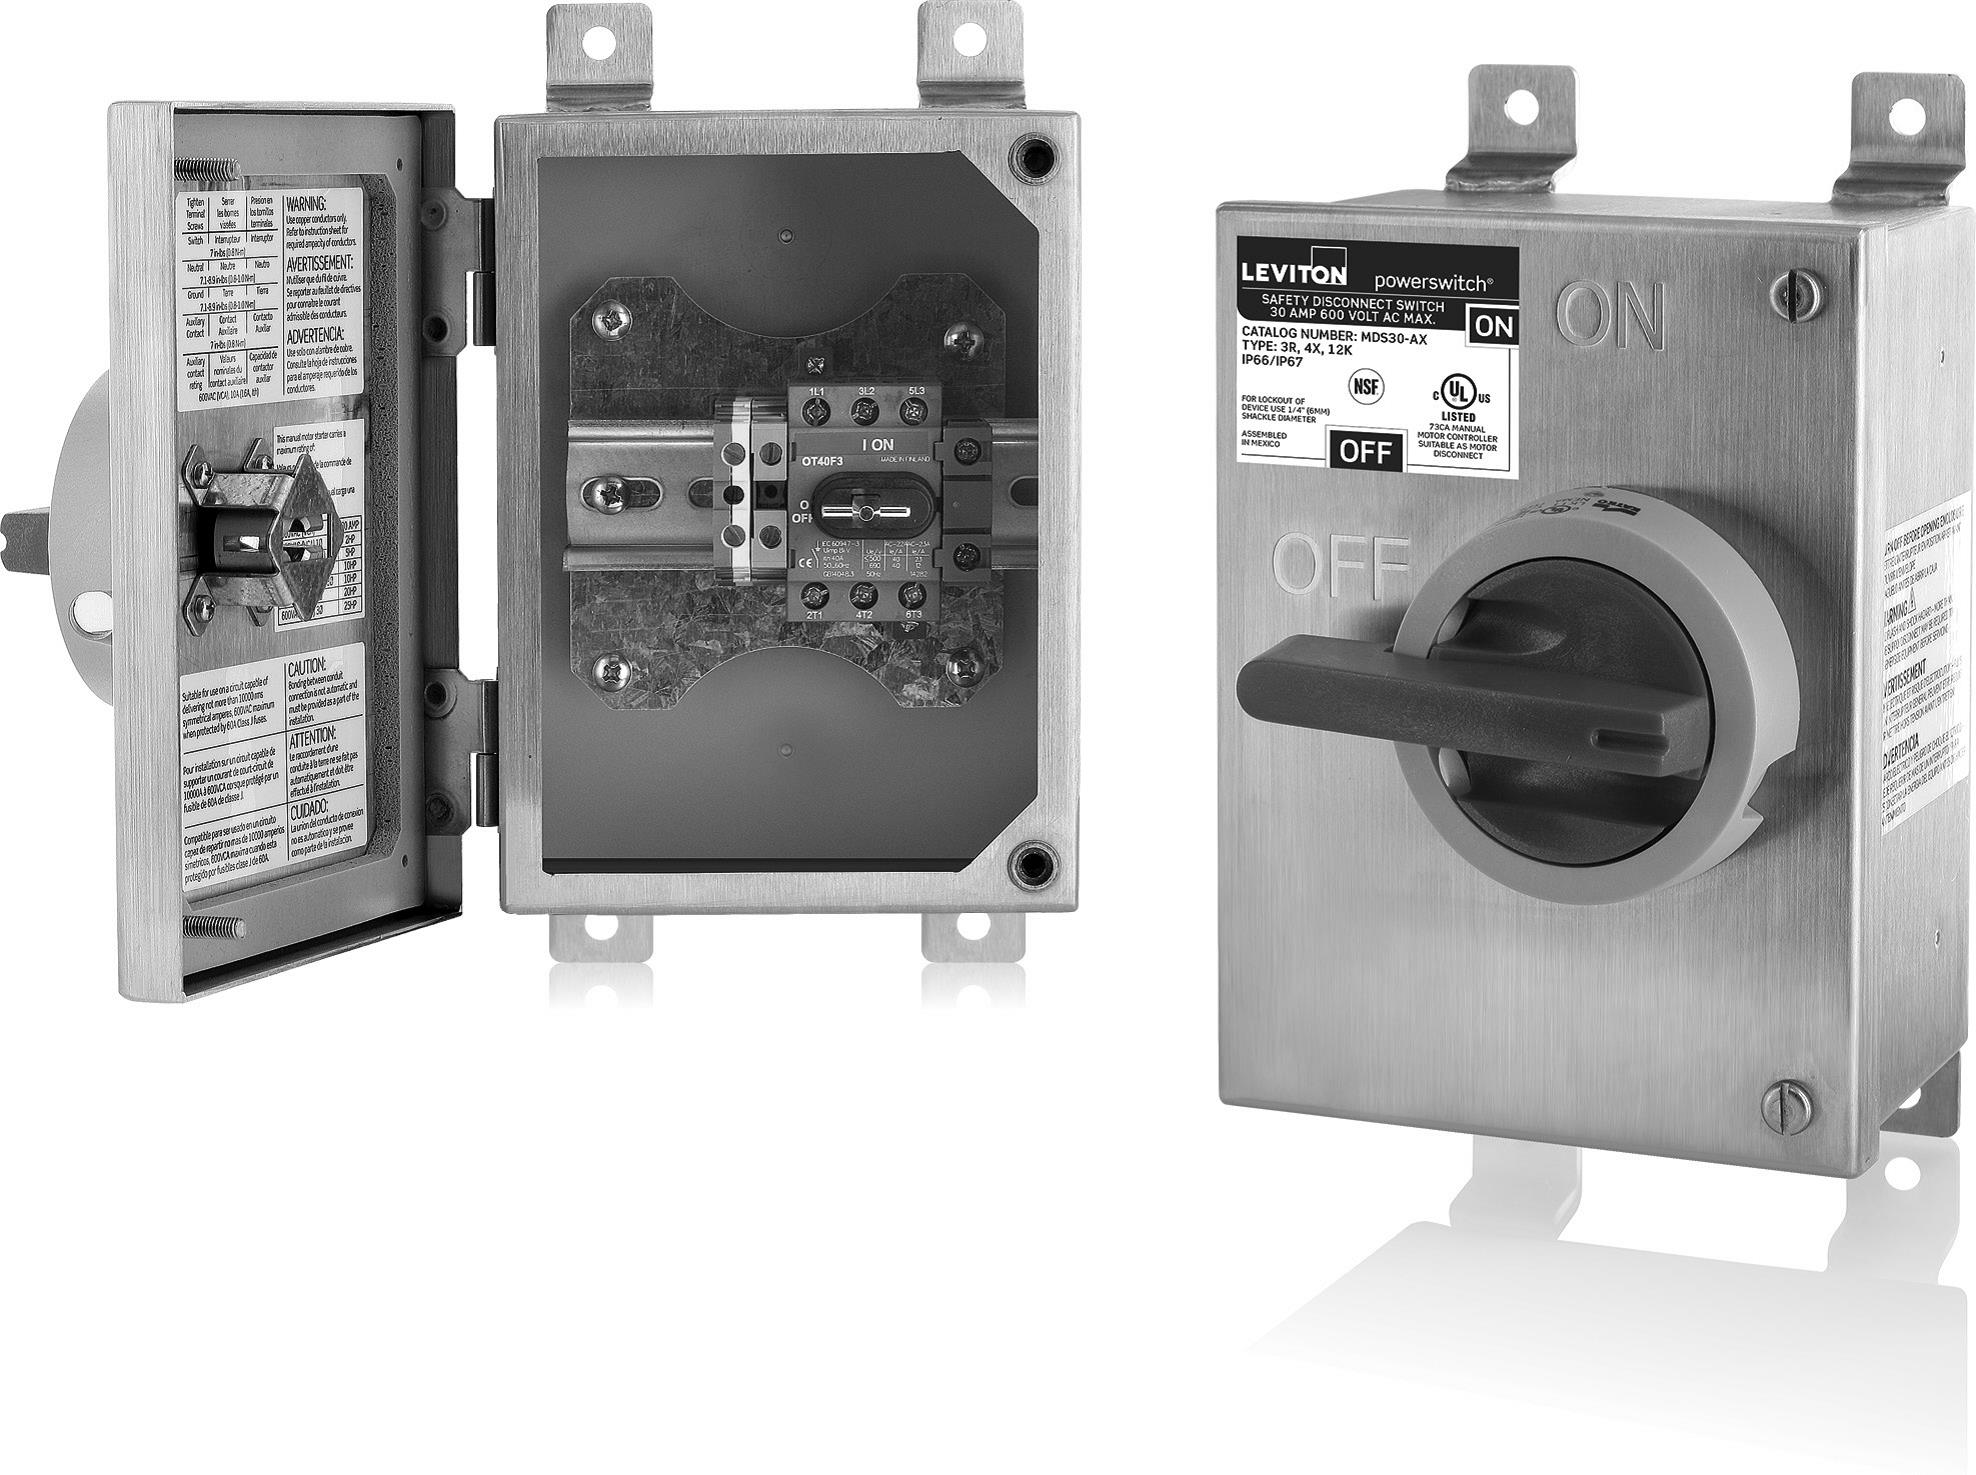 Leviton Powerswitch Stainless Steel Disconnect | AJB Sales